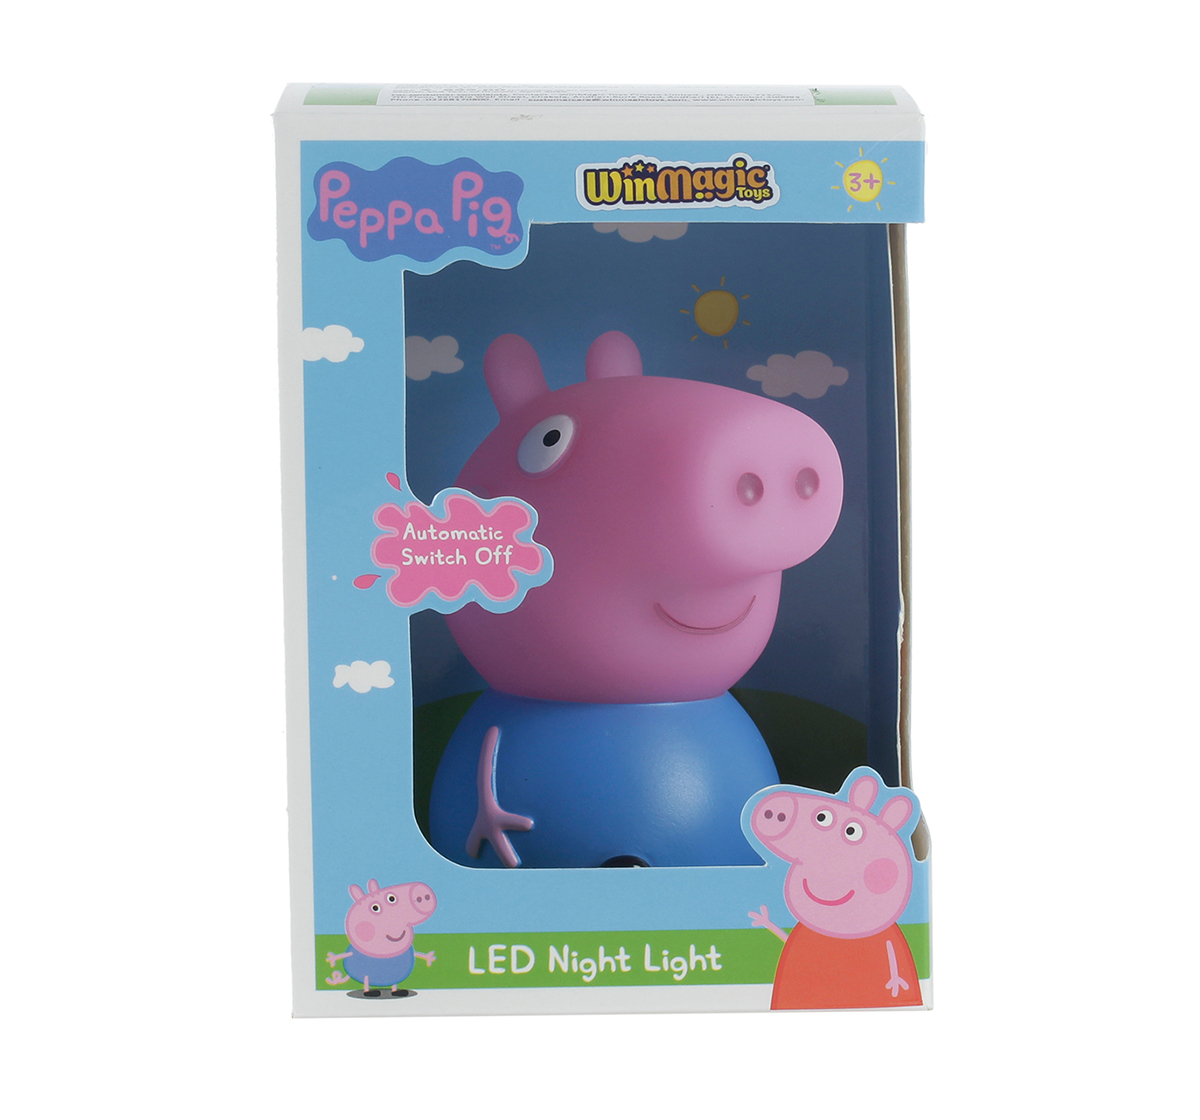 Peppa Pig | Peppa Pig George Night Light With Timer for Kids age 3Y+